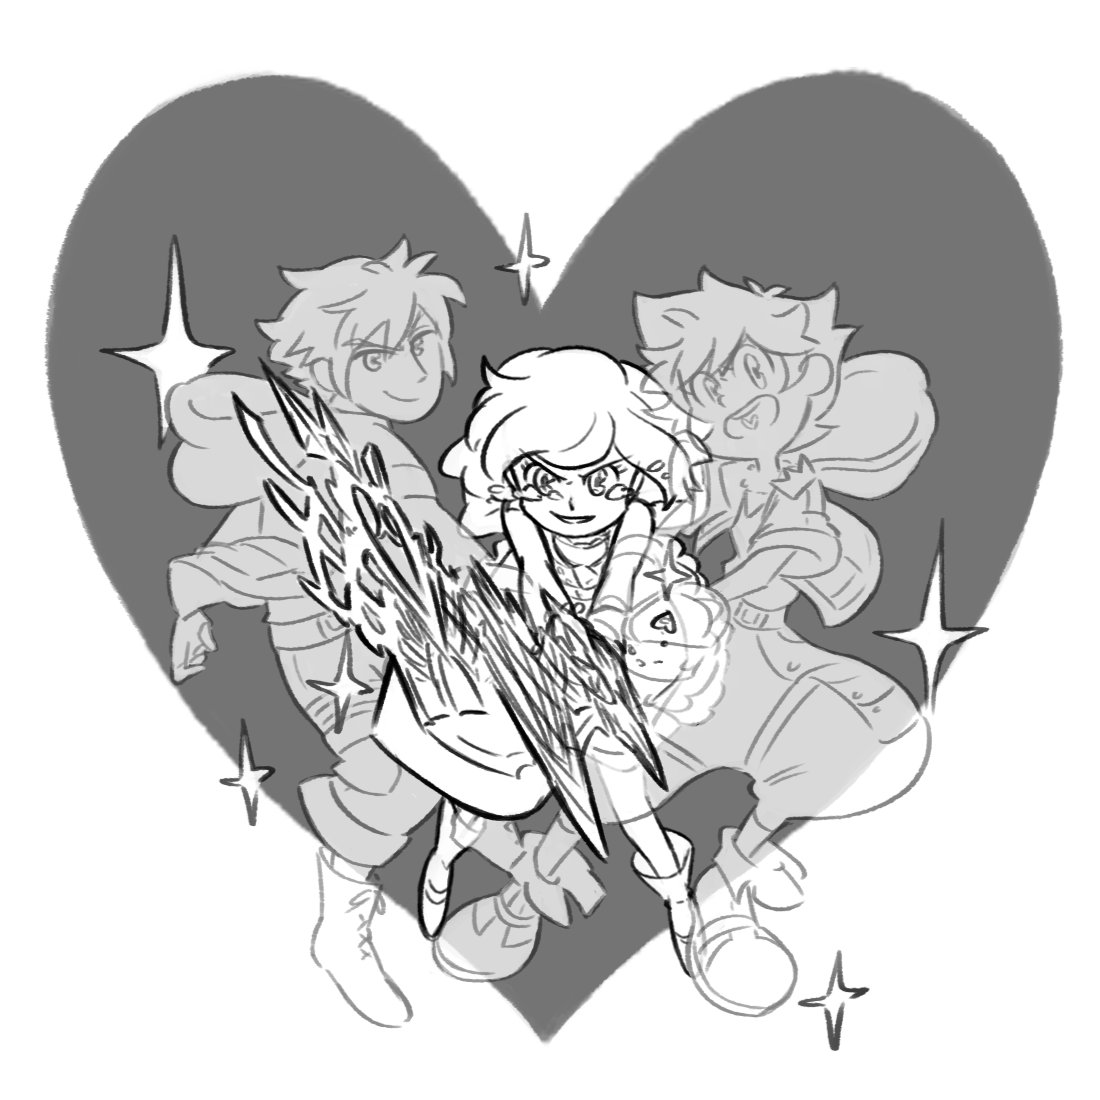 Some happy tears to end the week.  It&#39;s been one heck of a week. #KingdomHearts #KingdomHearts3<br>http://pic.twitter.com/ZnnijBSJQL